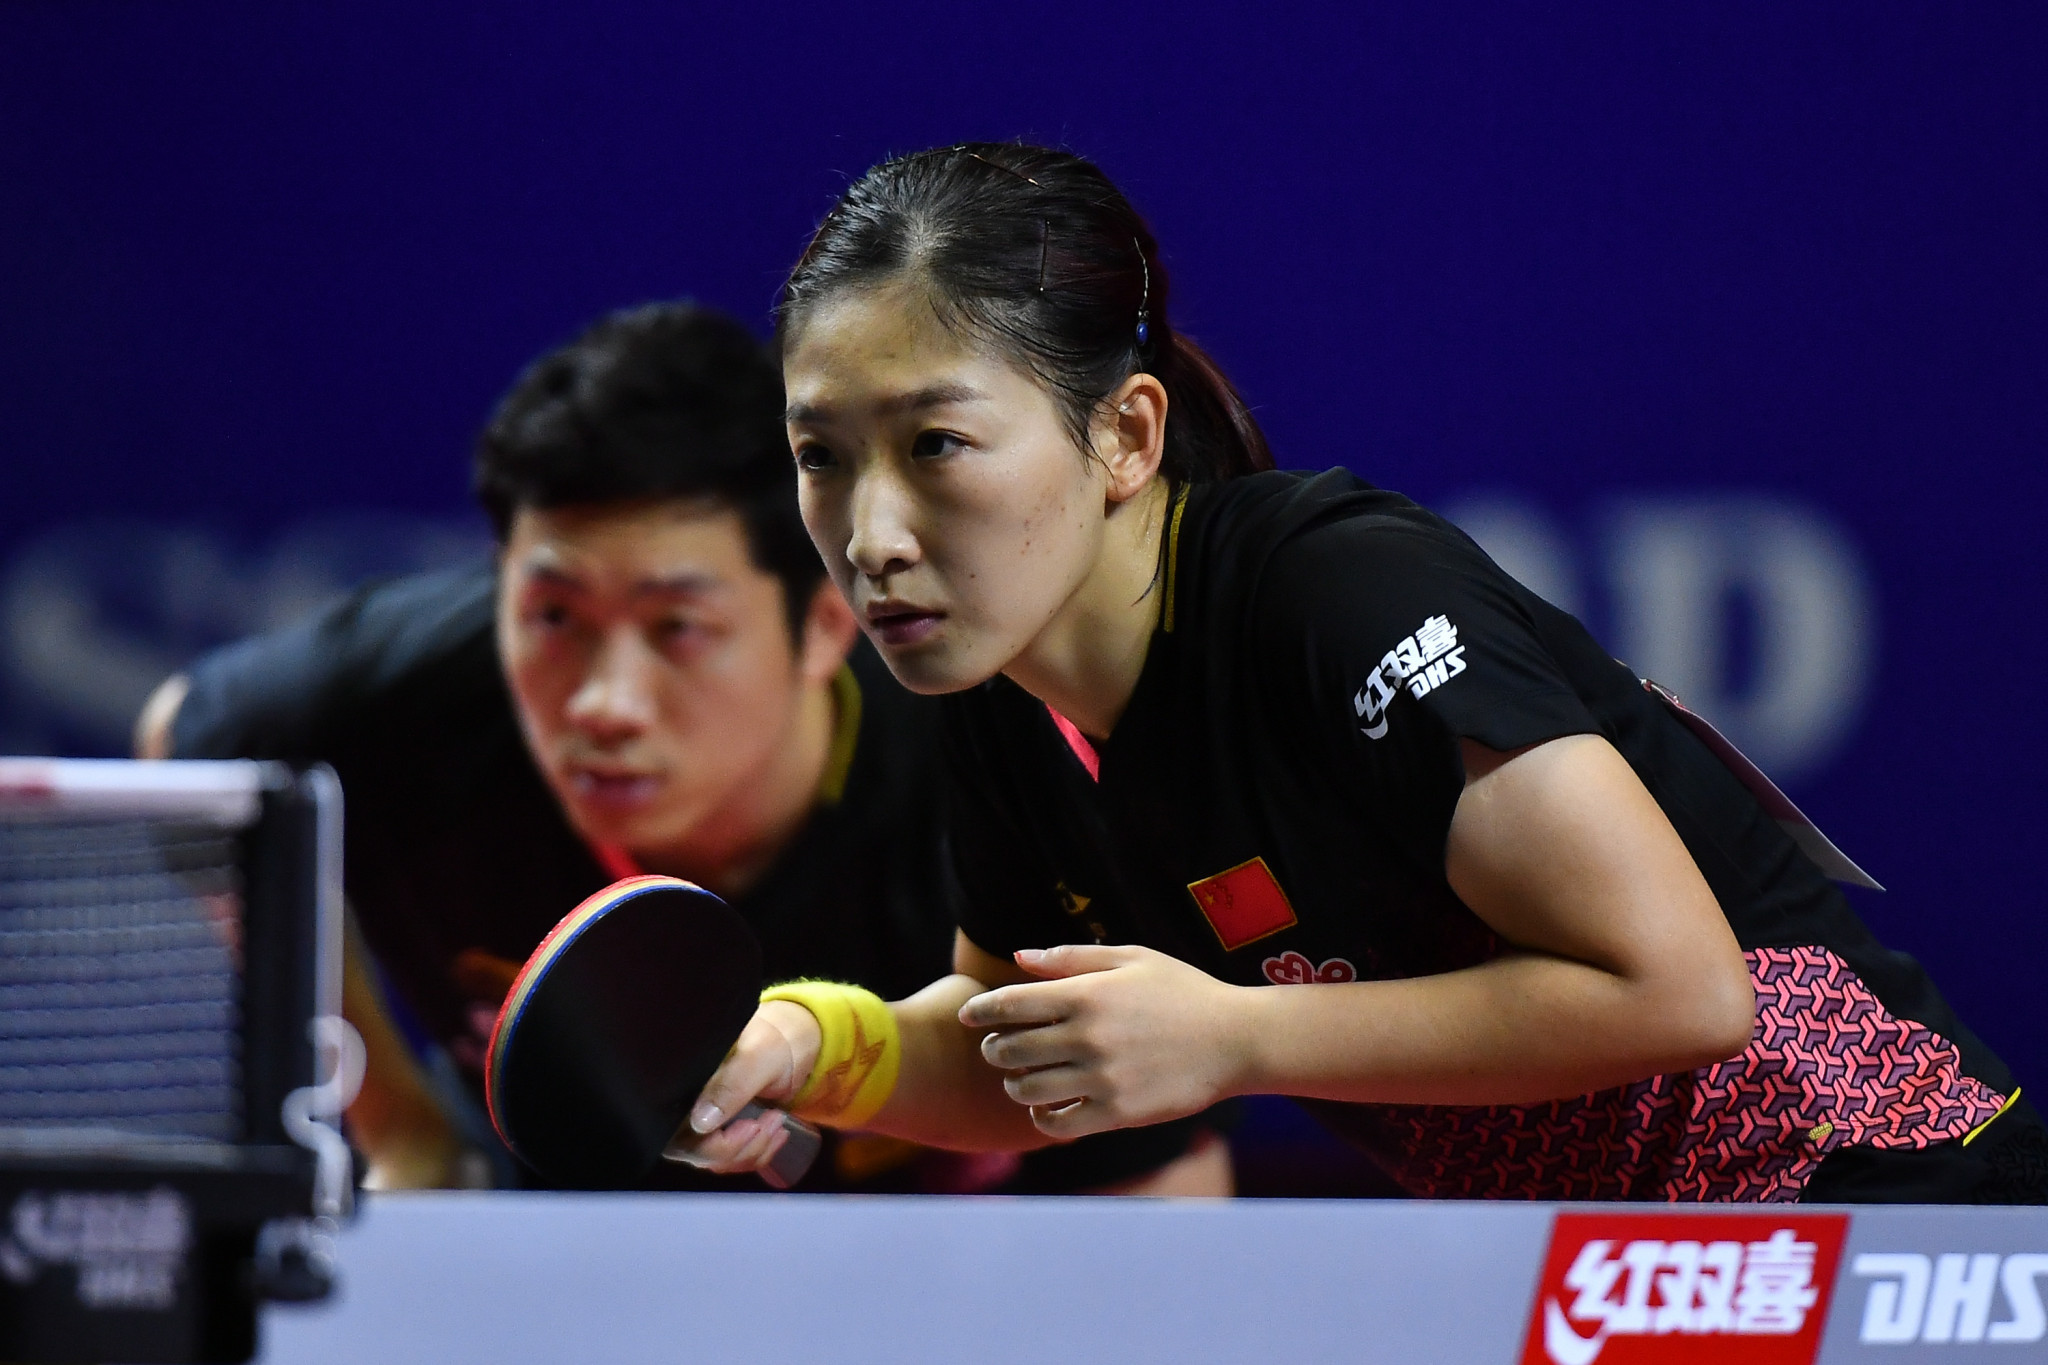 Men's world number one Xu Xin and women's world number two Liu Shiwen won the mixed doubles at the Asian Table Tennis Championships – but results didn't go completely to plan ©Getty Images